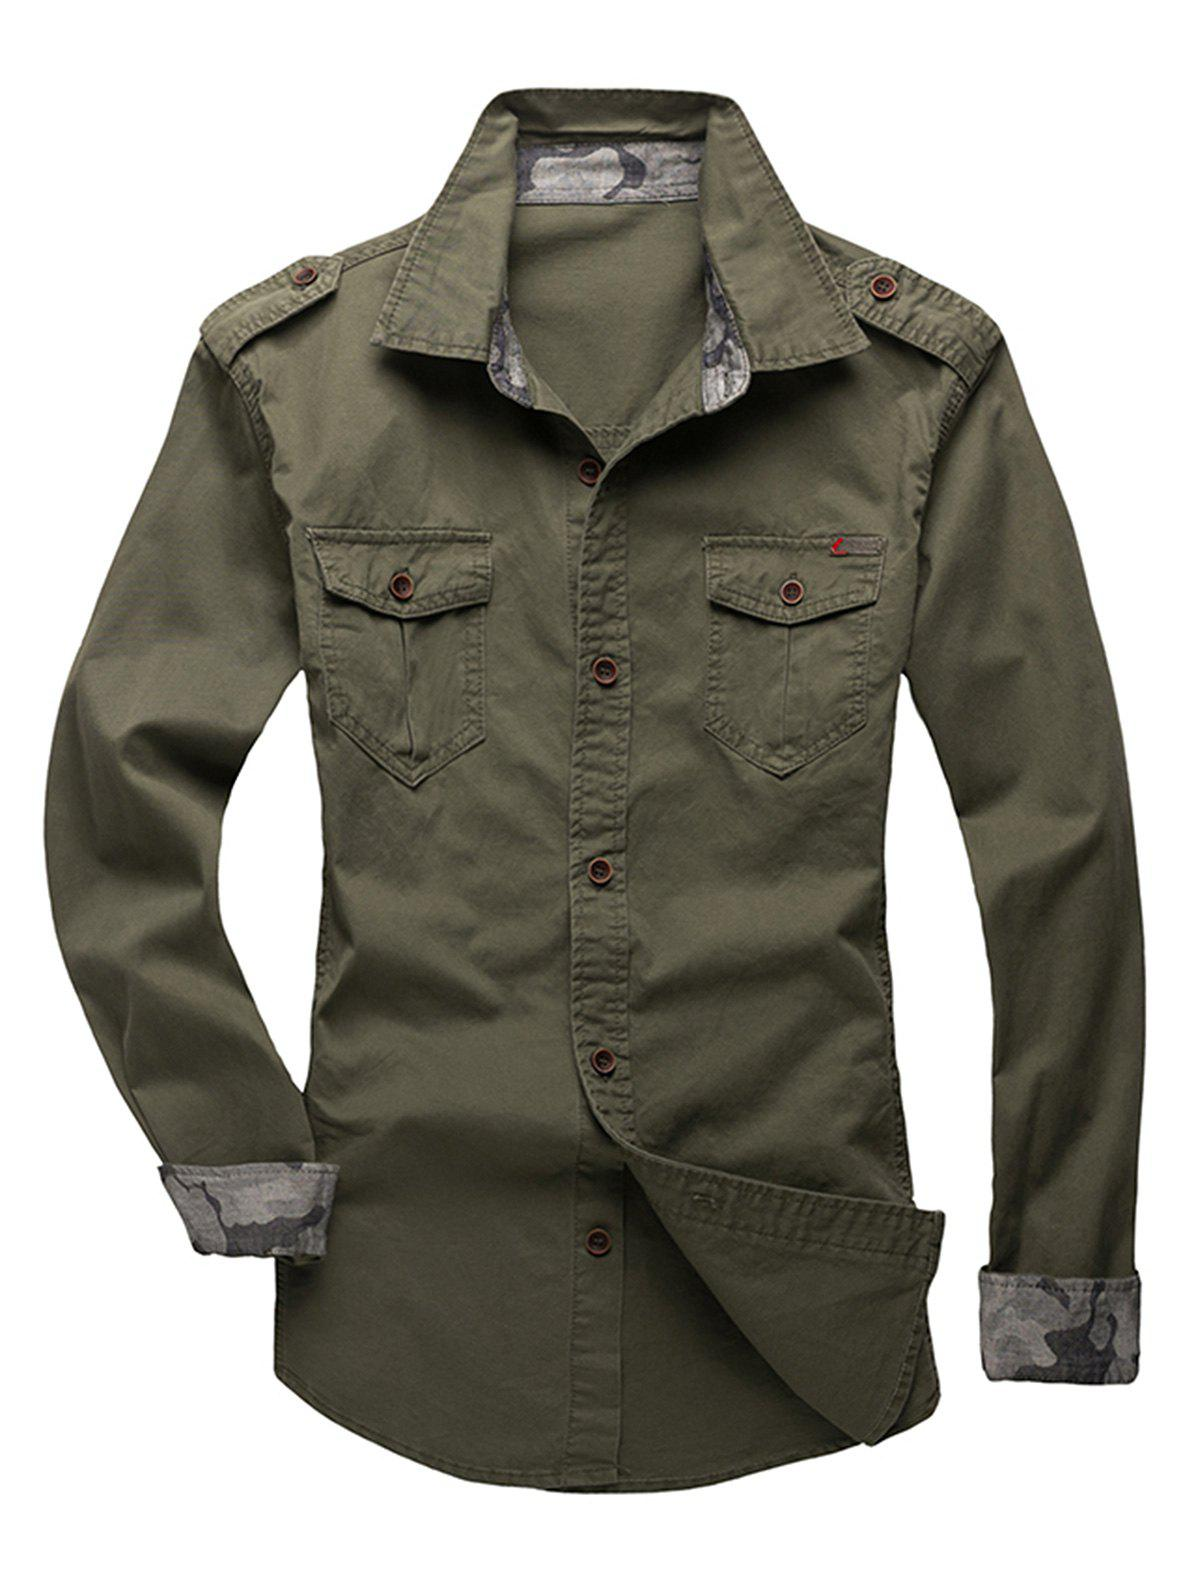 Discount Epaulet Design Fatigue Shirt